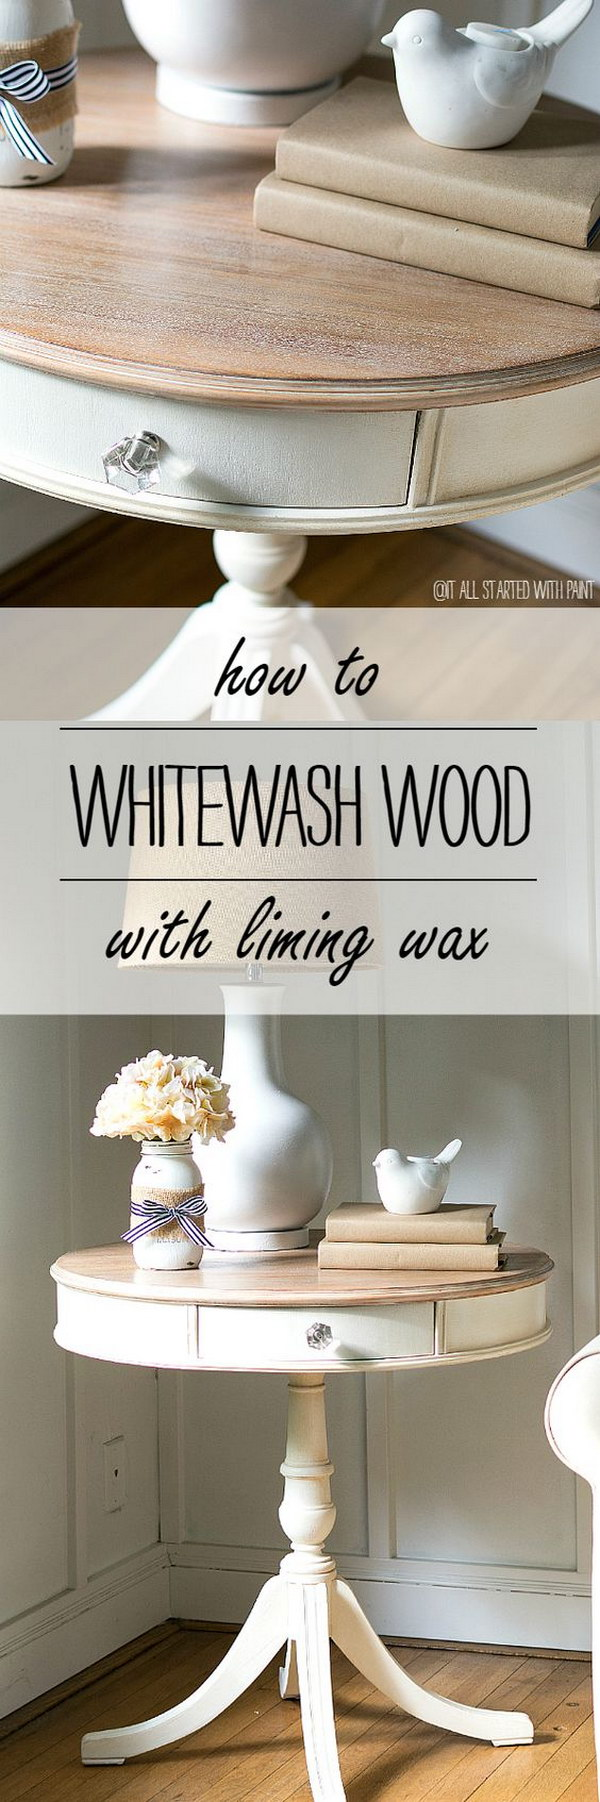 diy side table ideas with lots tutorials whitewash accent drum makeover using chalkpaint and whitewashed wood technique small swivel chair black brown nest tables making end pier